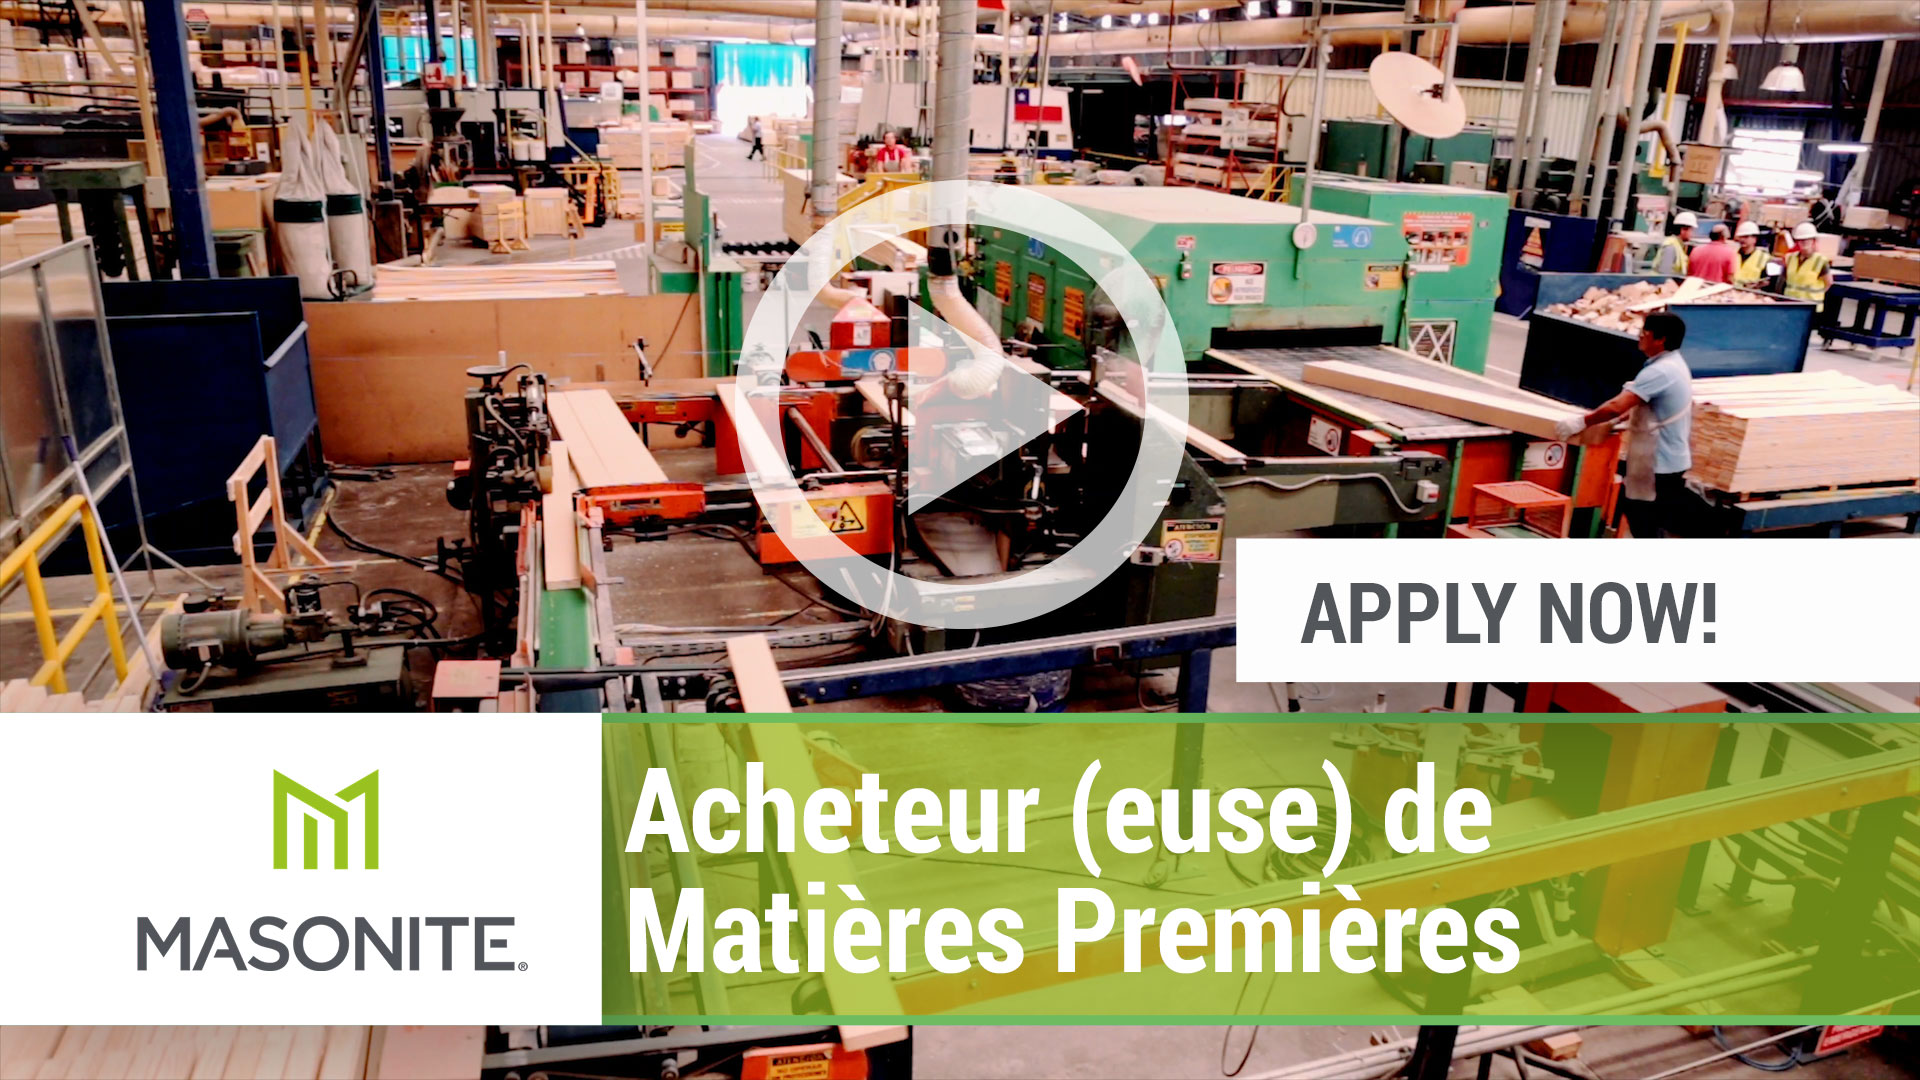 Watch our careers video for available job opening Acheteur (euse) de Matieres Premieres in Windsor, TBD.  CANADA